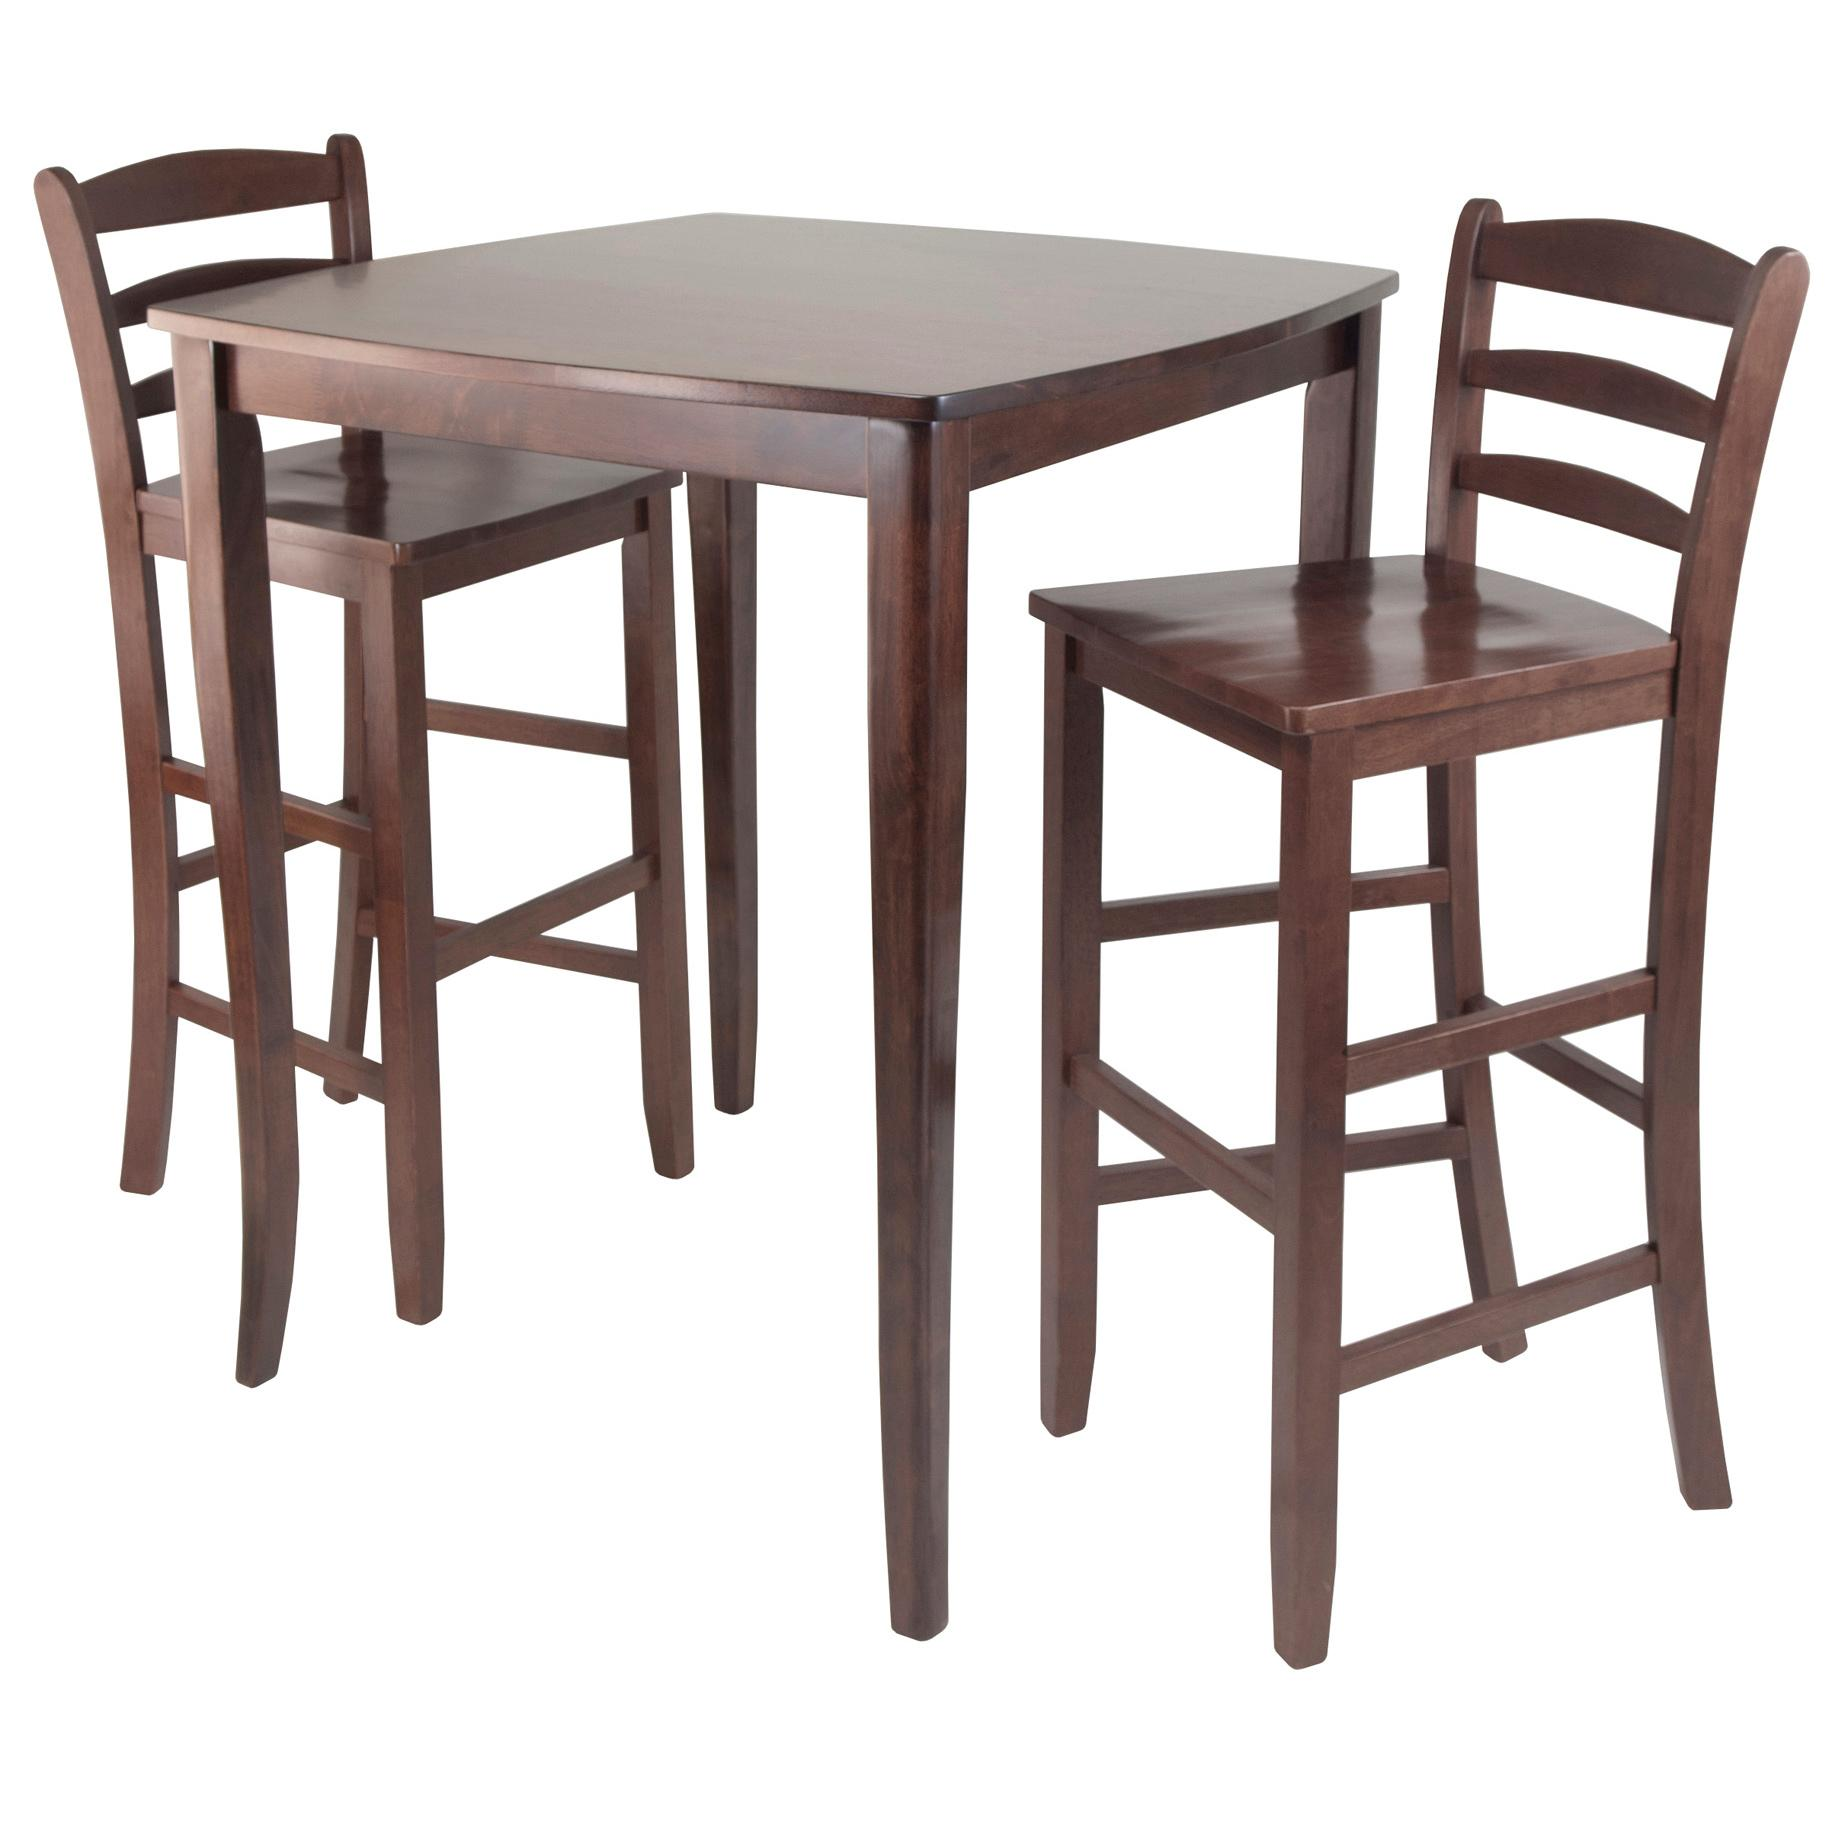 High Table With Stools: Winsome Inglewood High/Pub Dining Table With